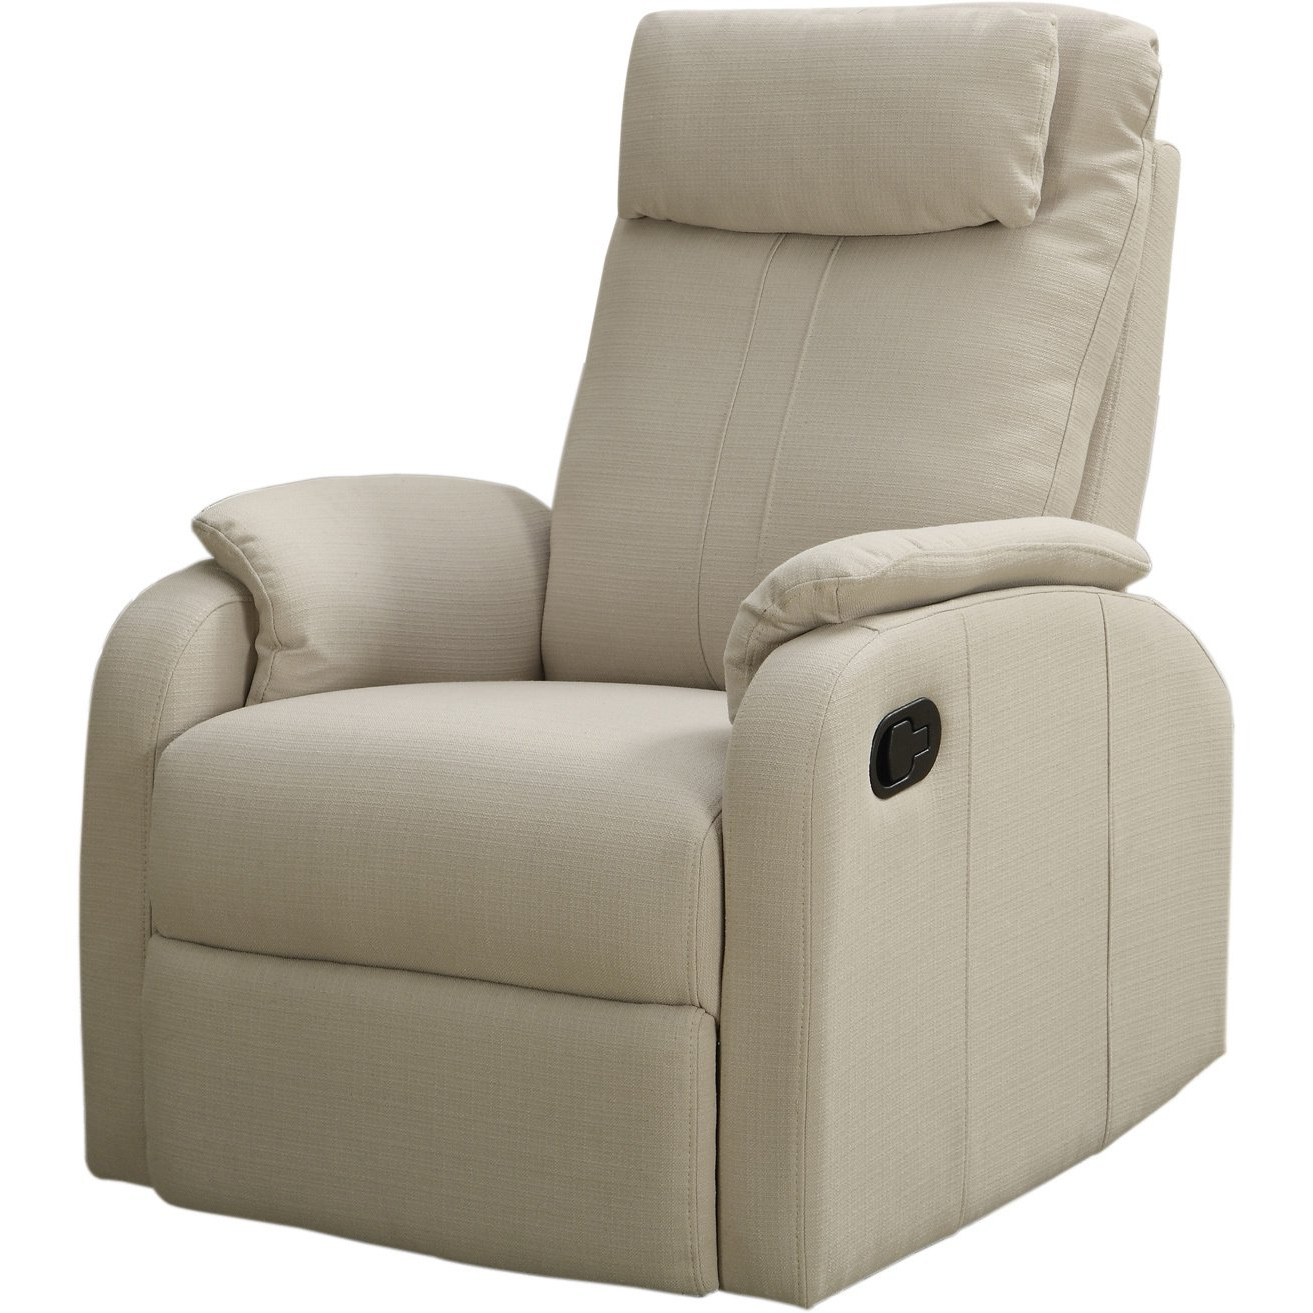 Shop Sand Linen Fabric Swivel Rocker Recliner – Free Shipping Today Intended For Most Popular Gannon Linen Power Swivel Recliners (View 17 of 20)